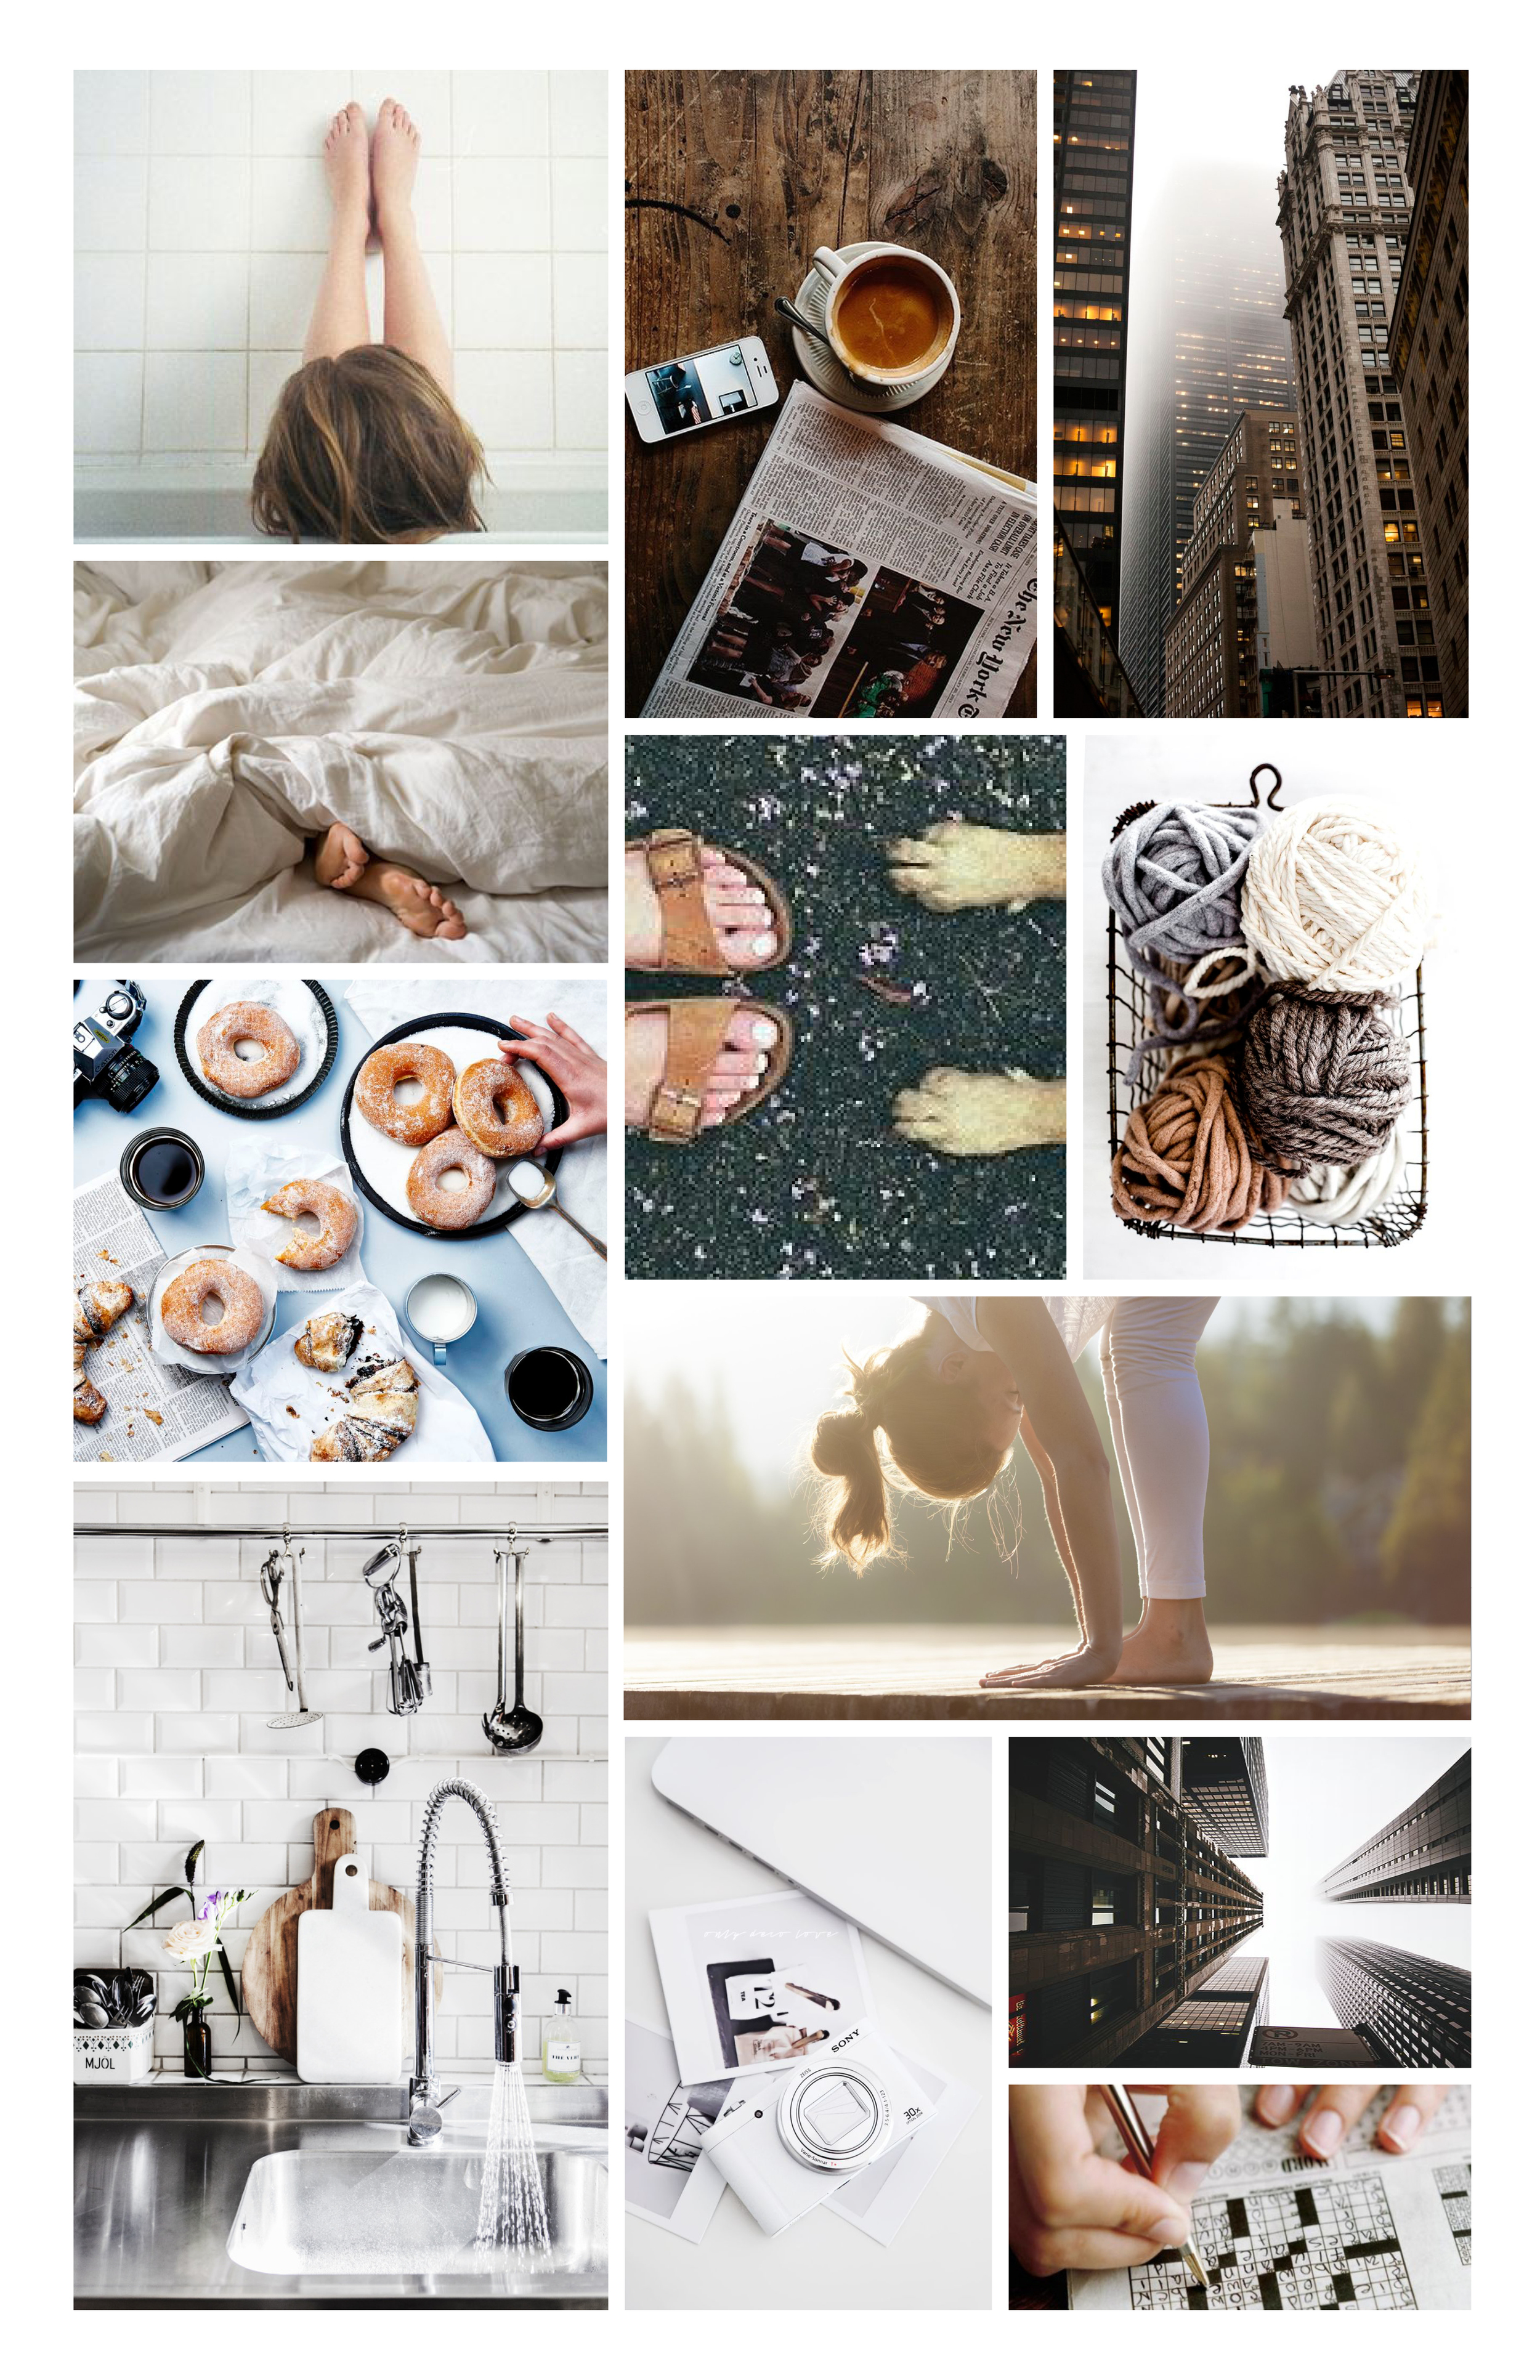 WEEKLY INSPIRATION WITH MONDAY MOOD BOARD 40 | THE PAPER CURATOR